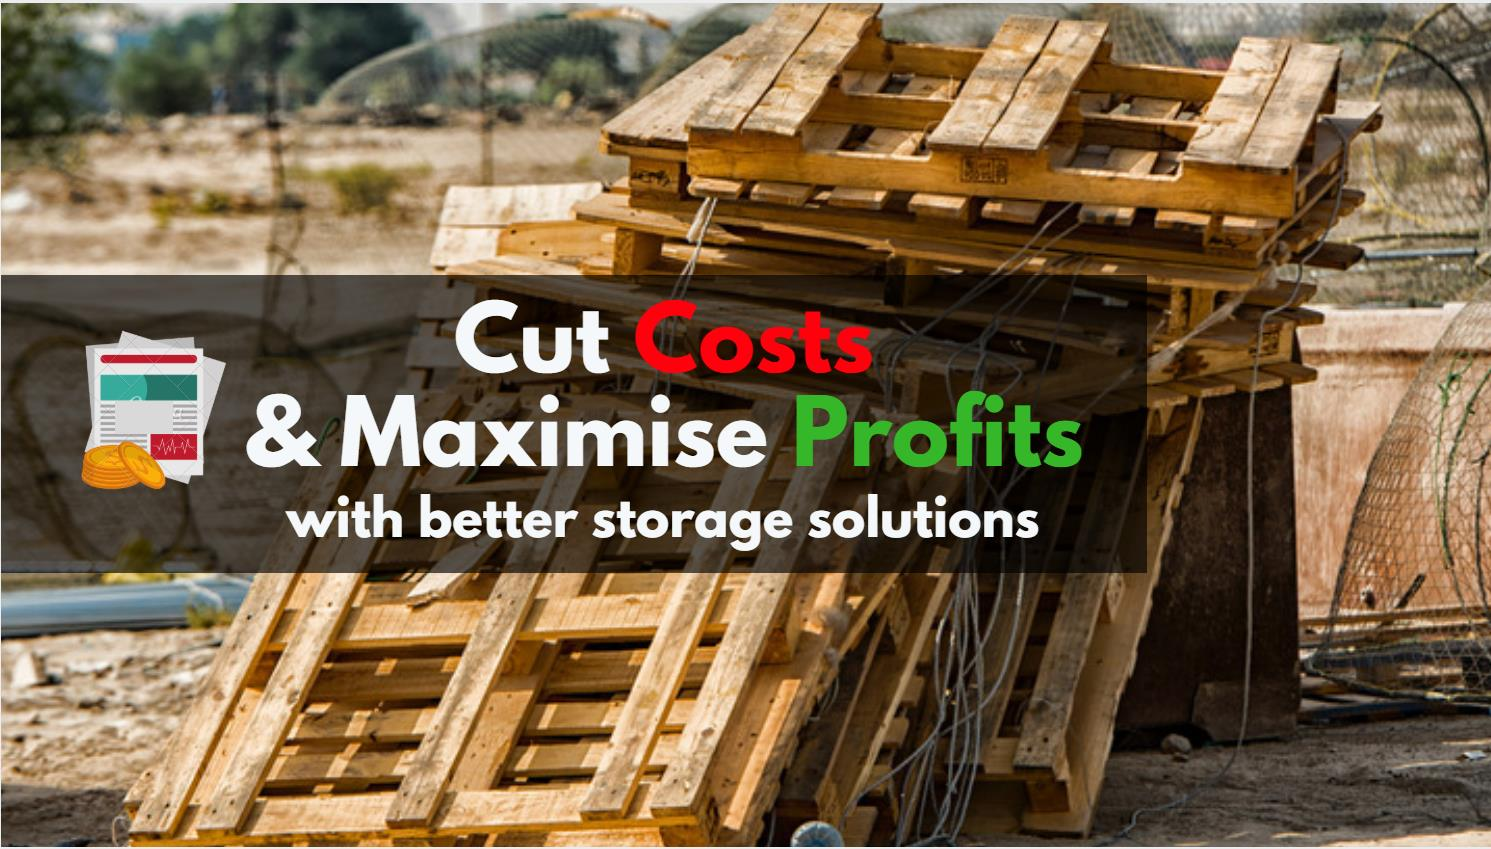 Cut Costs And Maximise Profits With Better Storage Solutions